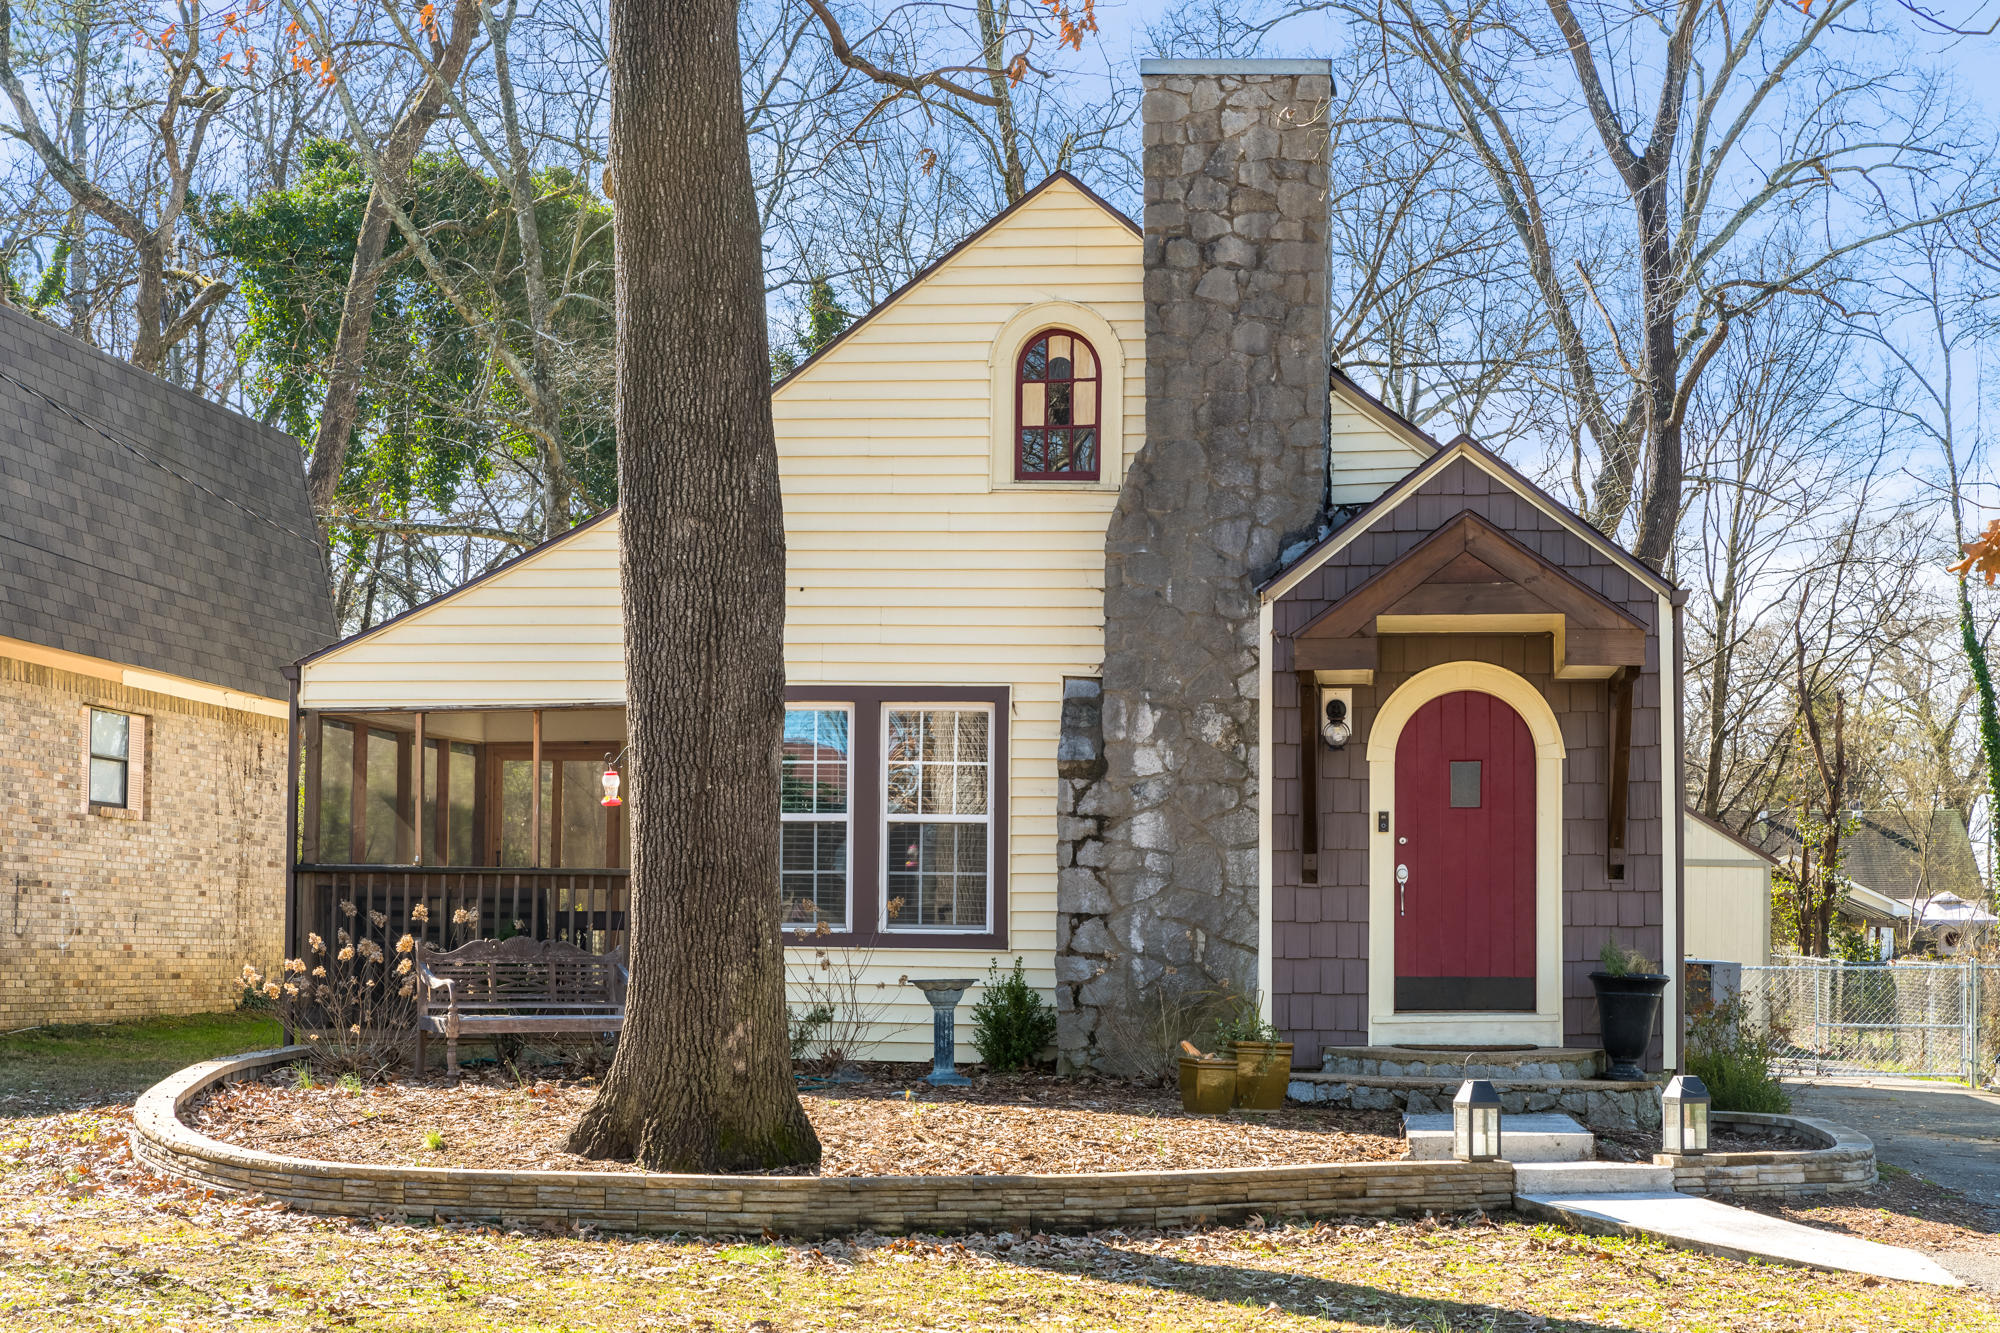 5210  Sunbeam  Ave 37411 - One of Chattanooga Homes for Sale